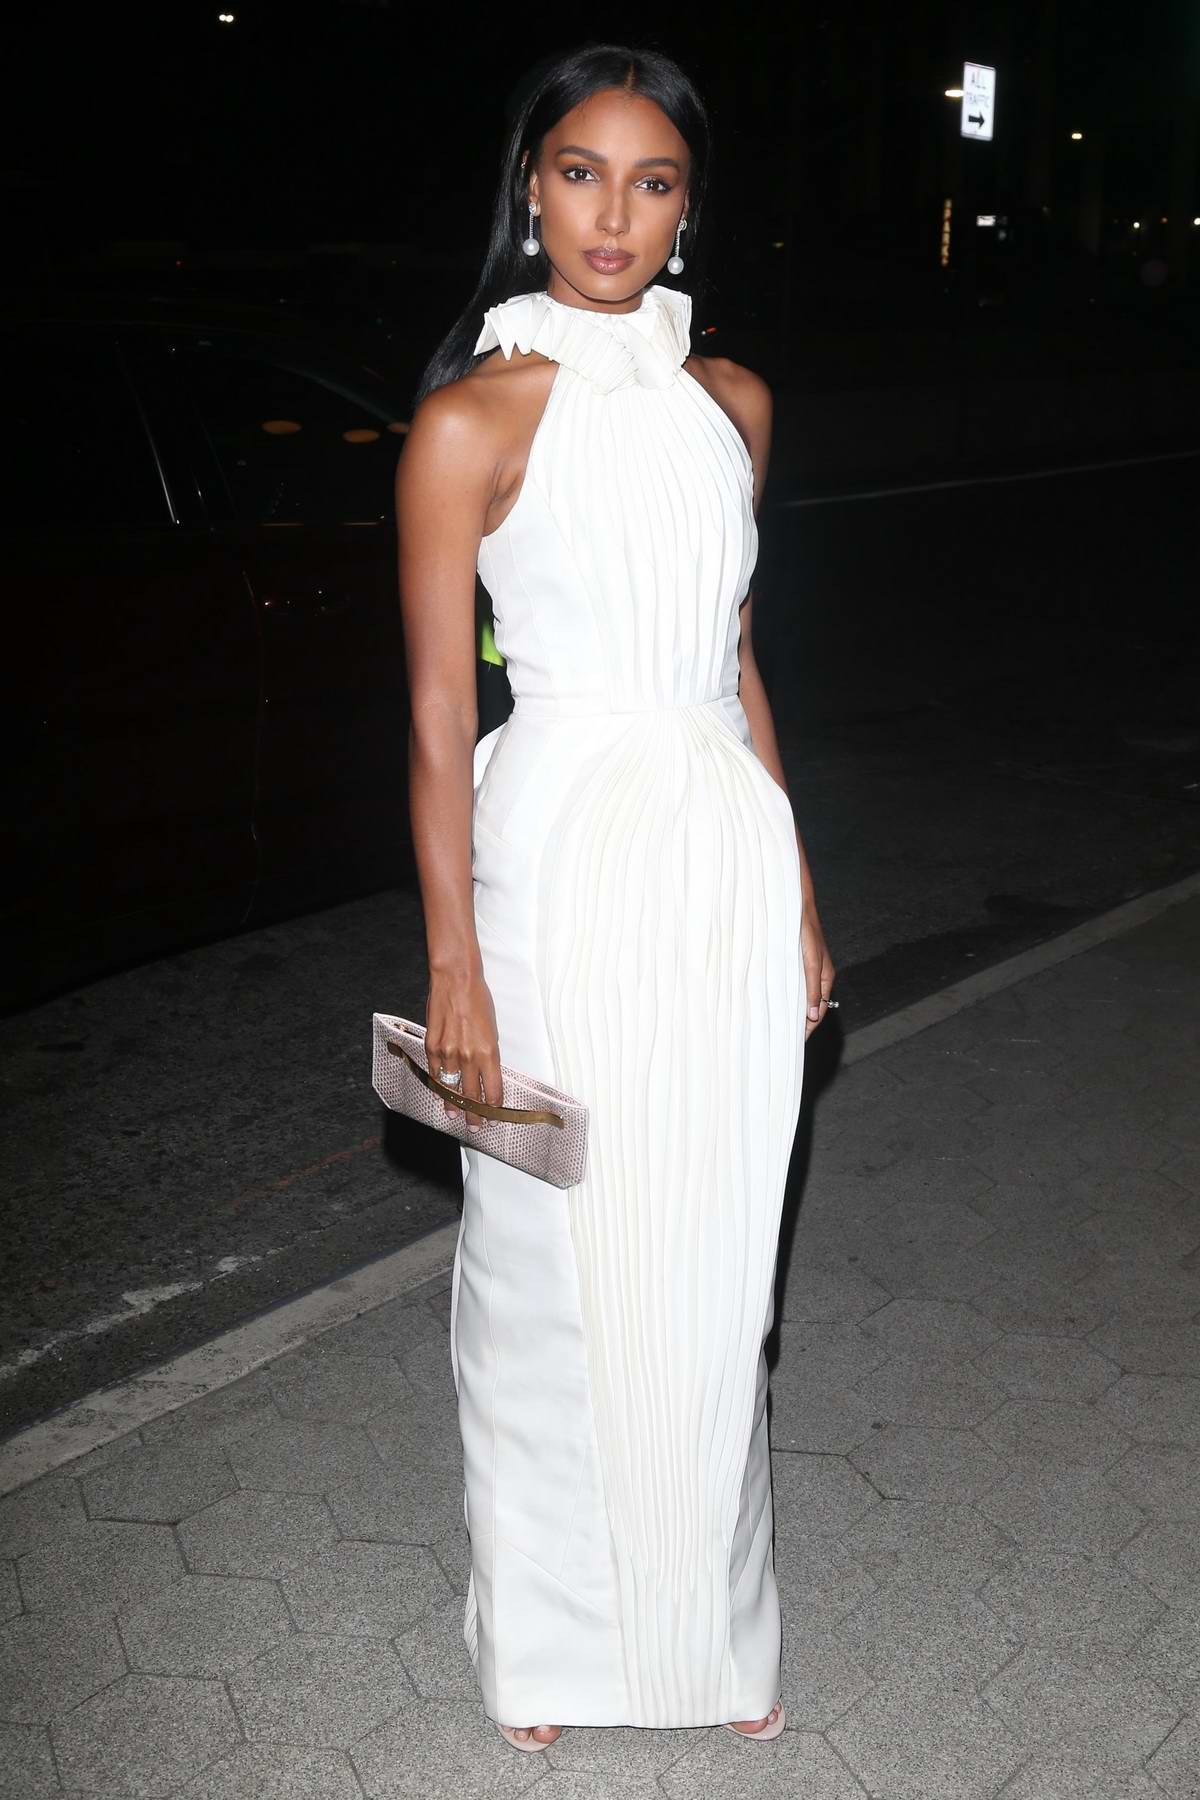 Jasmine Tookes attends the CFDA & Vogue Fashion Fund Awards at Cipriani's in New York City